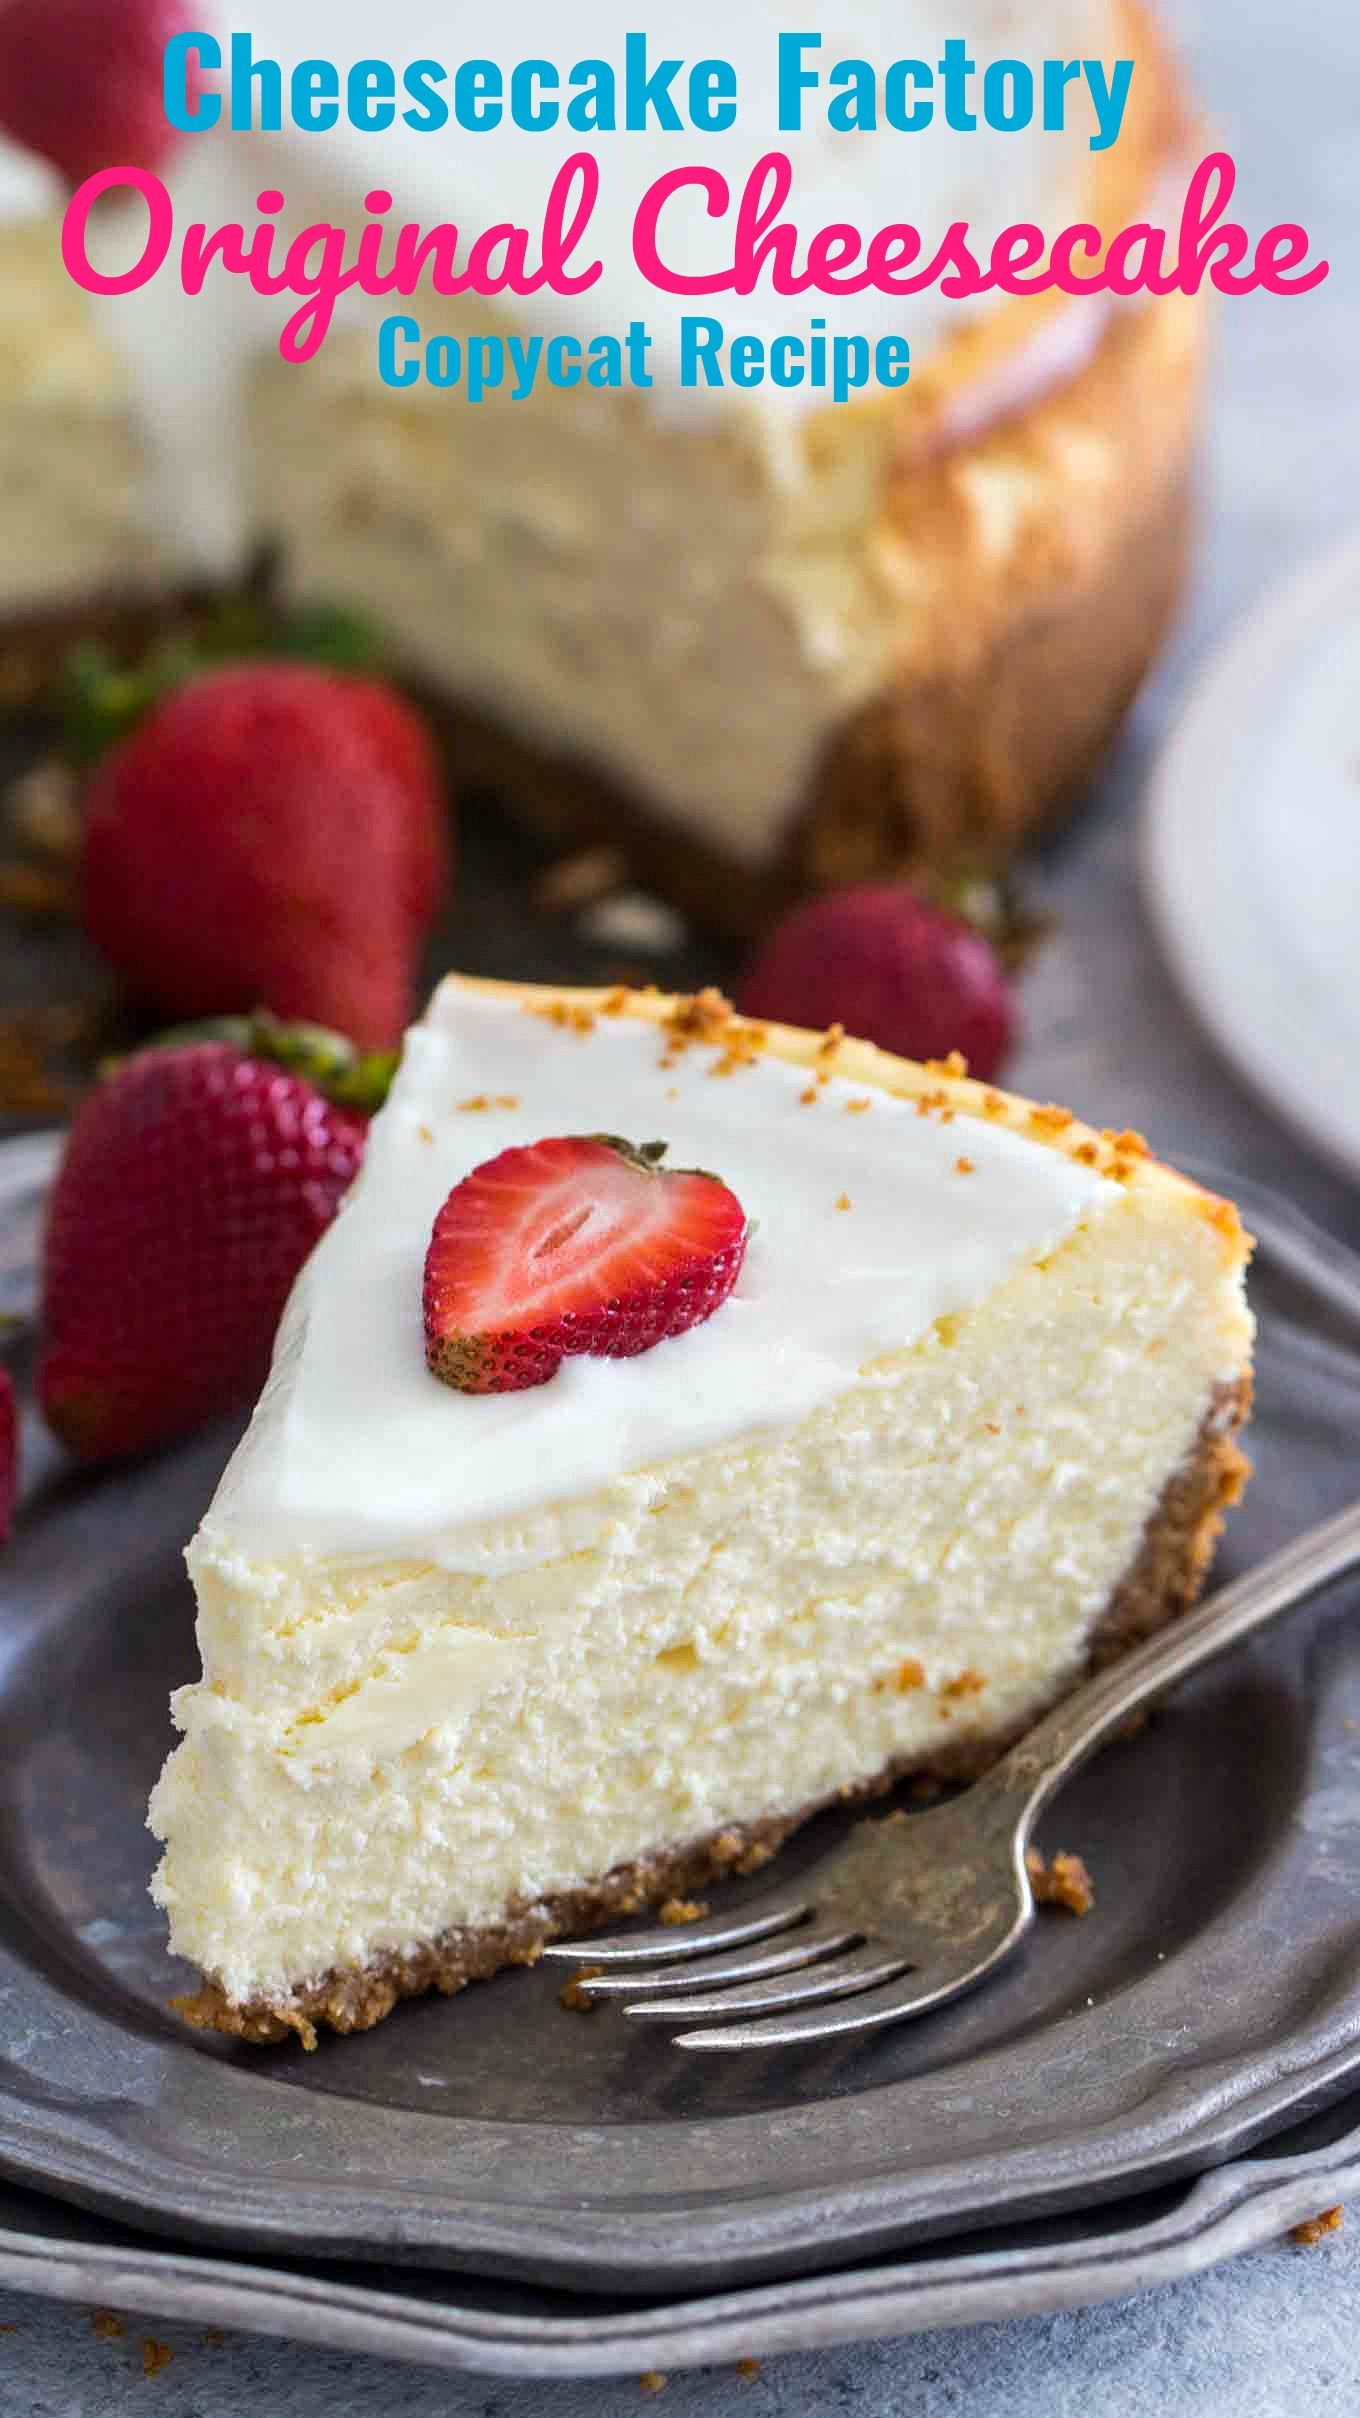 Cheesecake Factory Original Cheesecake Copycat Recipe can easily be made at home anytime you crave it. This is a luxurious and creamy cheesecake with a graham crust and sour cream topping.